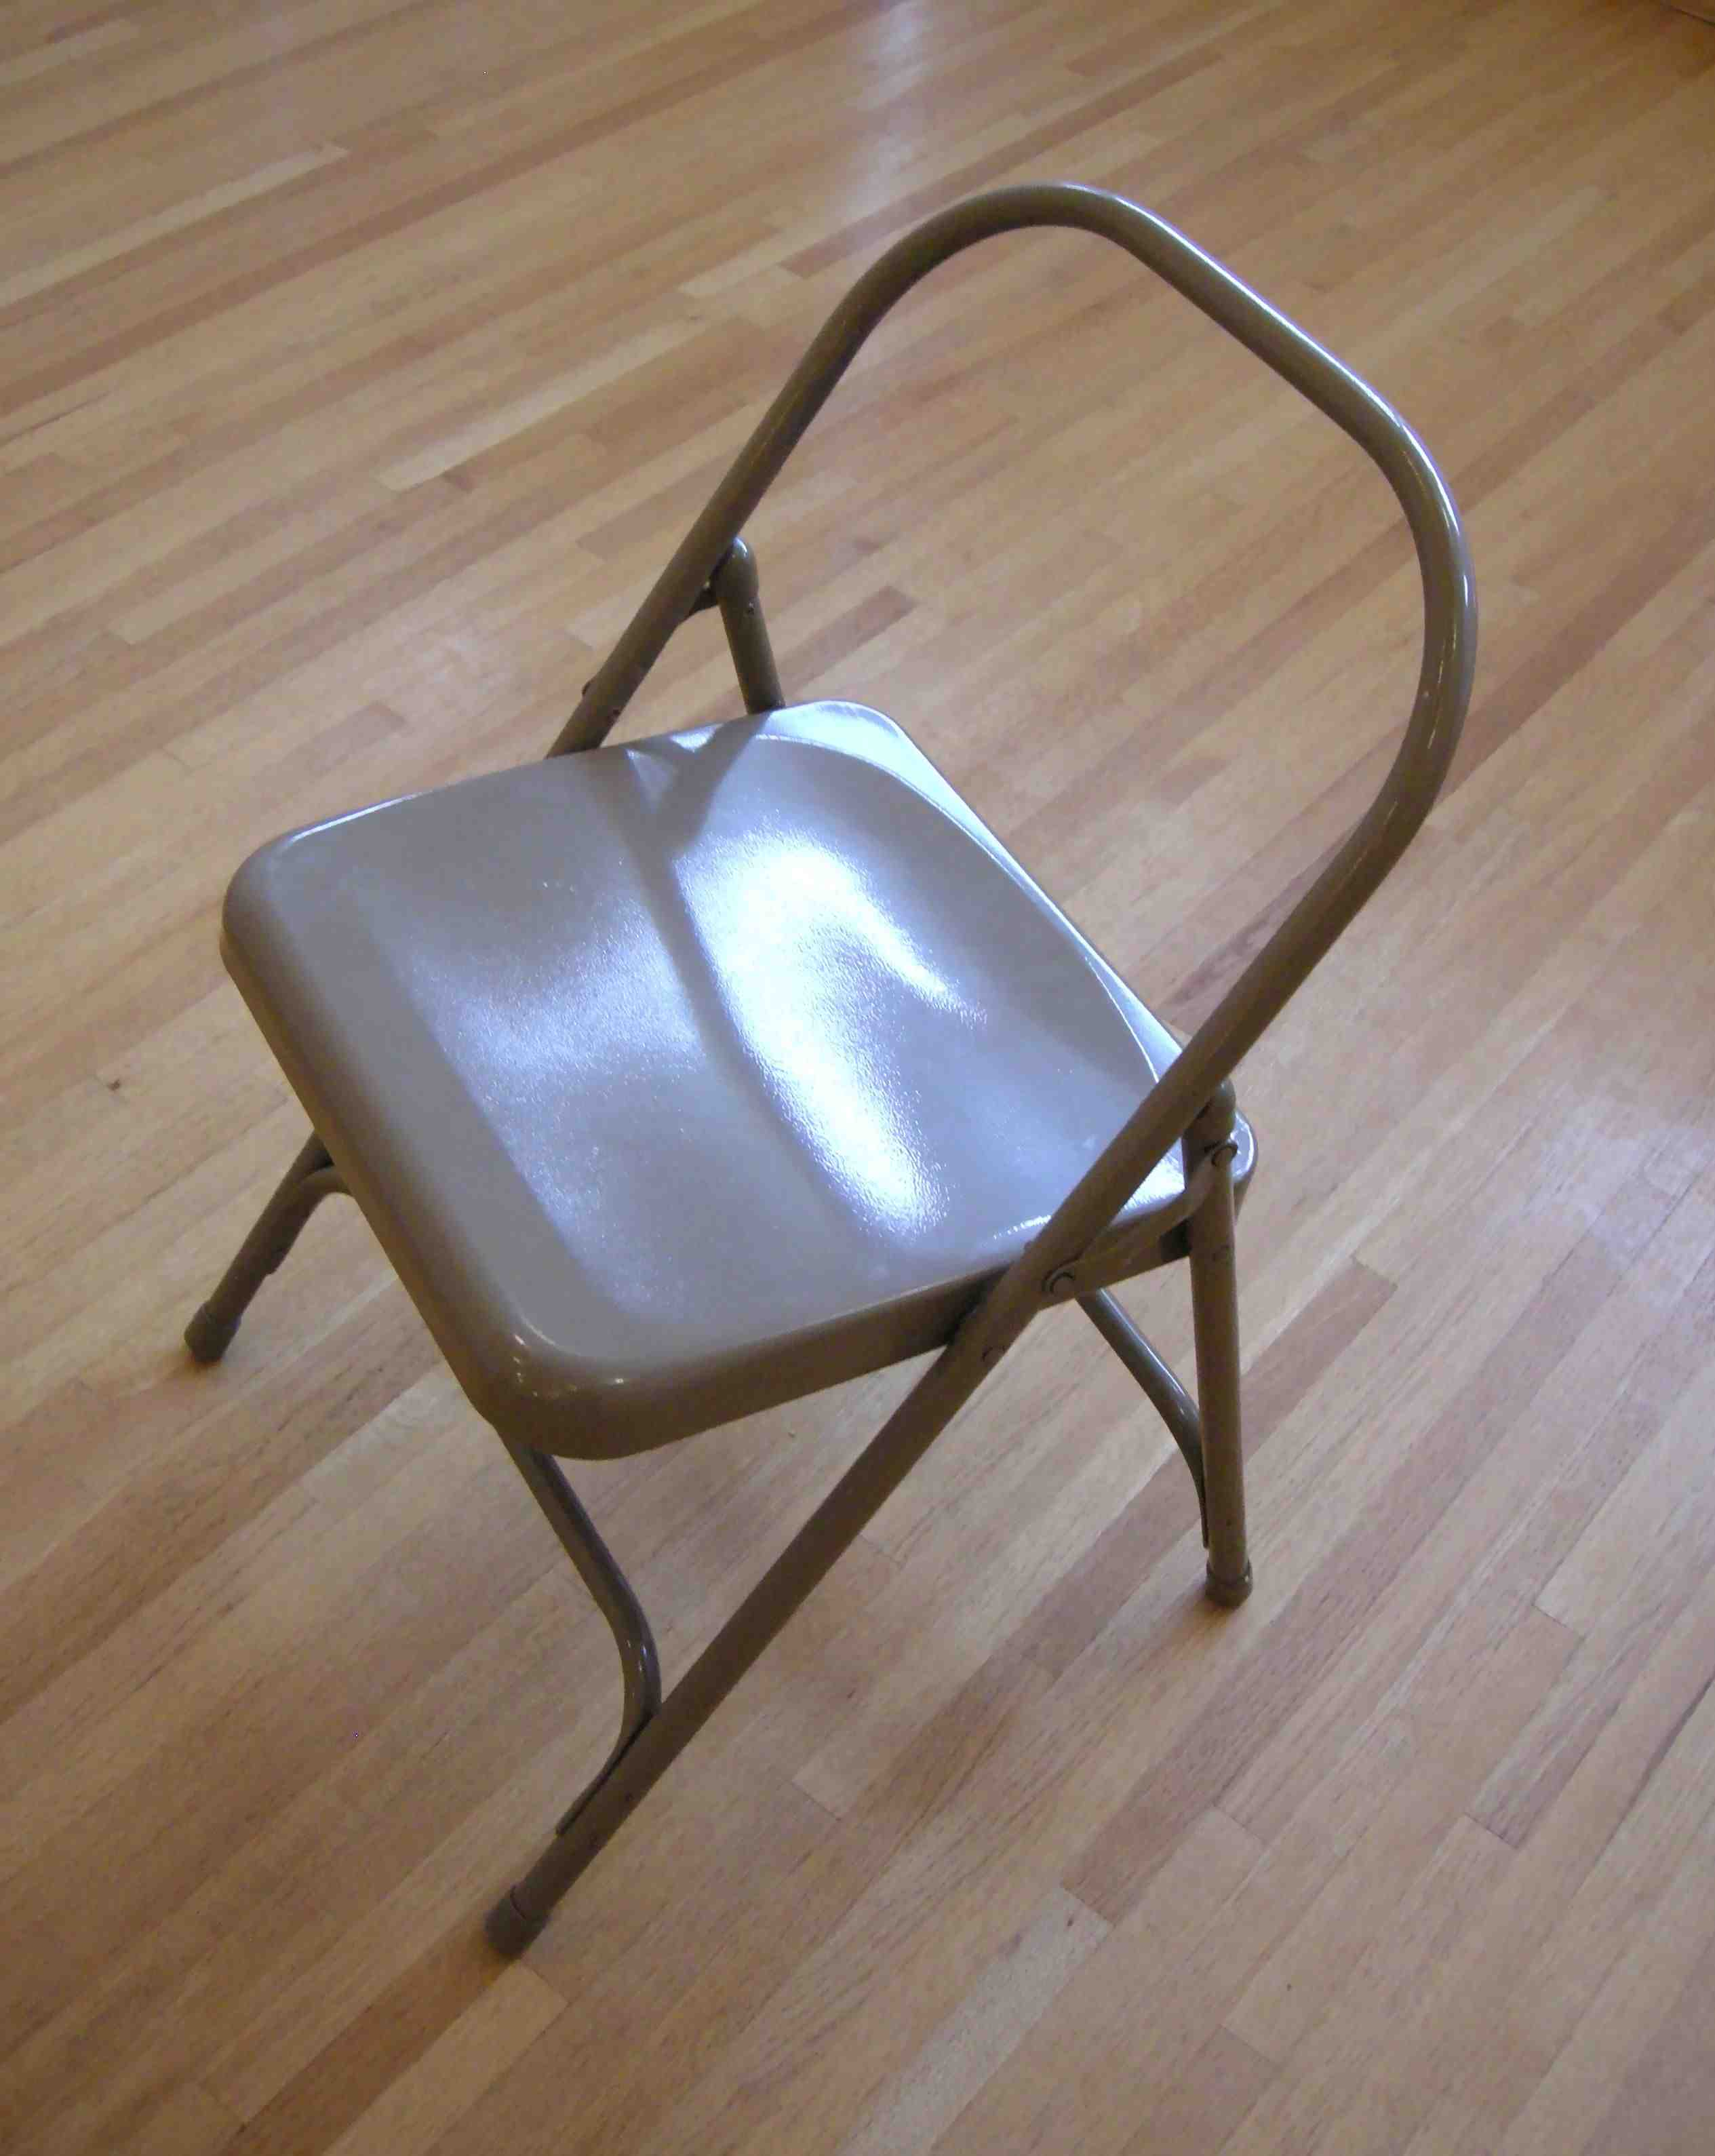 folding metal yoga chair stool bar we need chairs but where can get them five minute i did my best to make it look glamorous and desireable